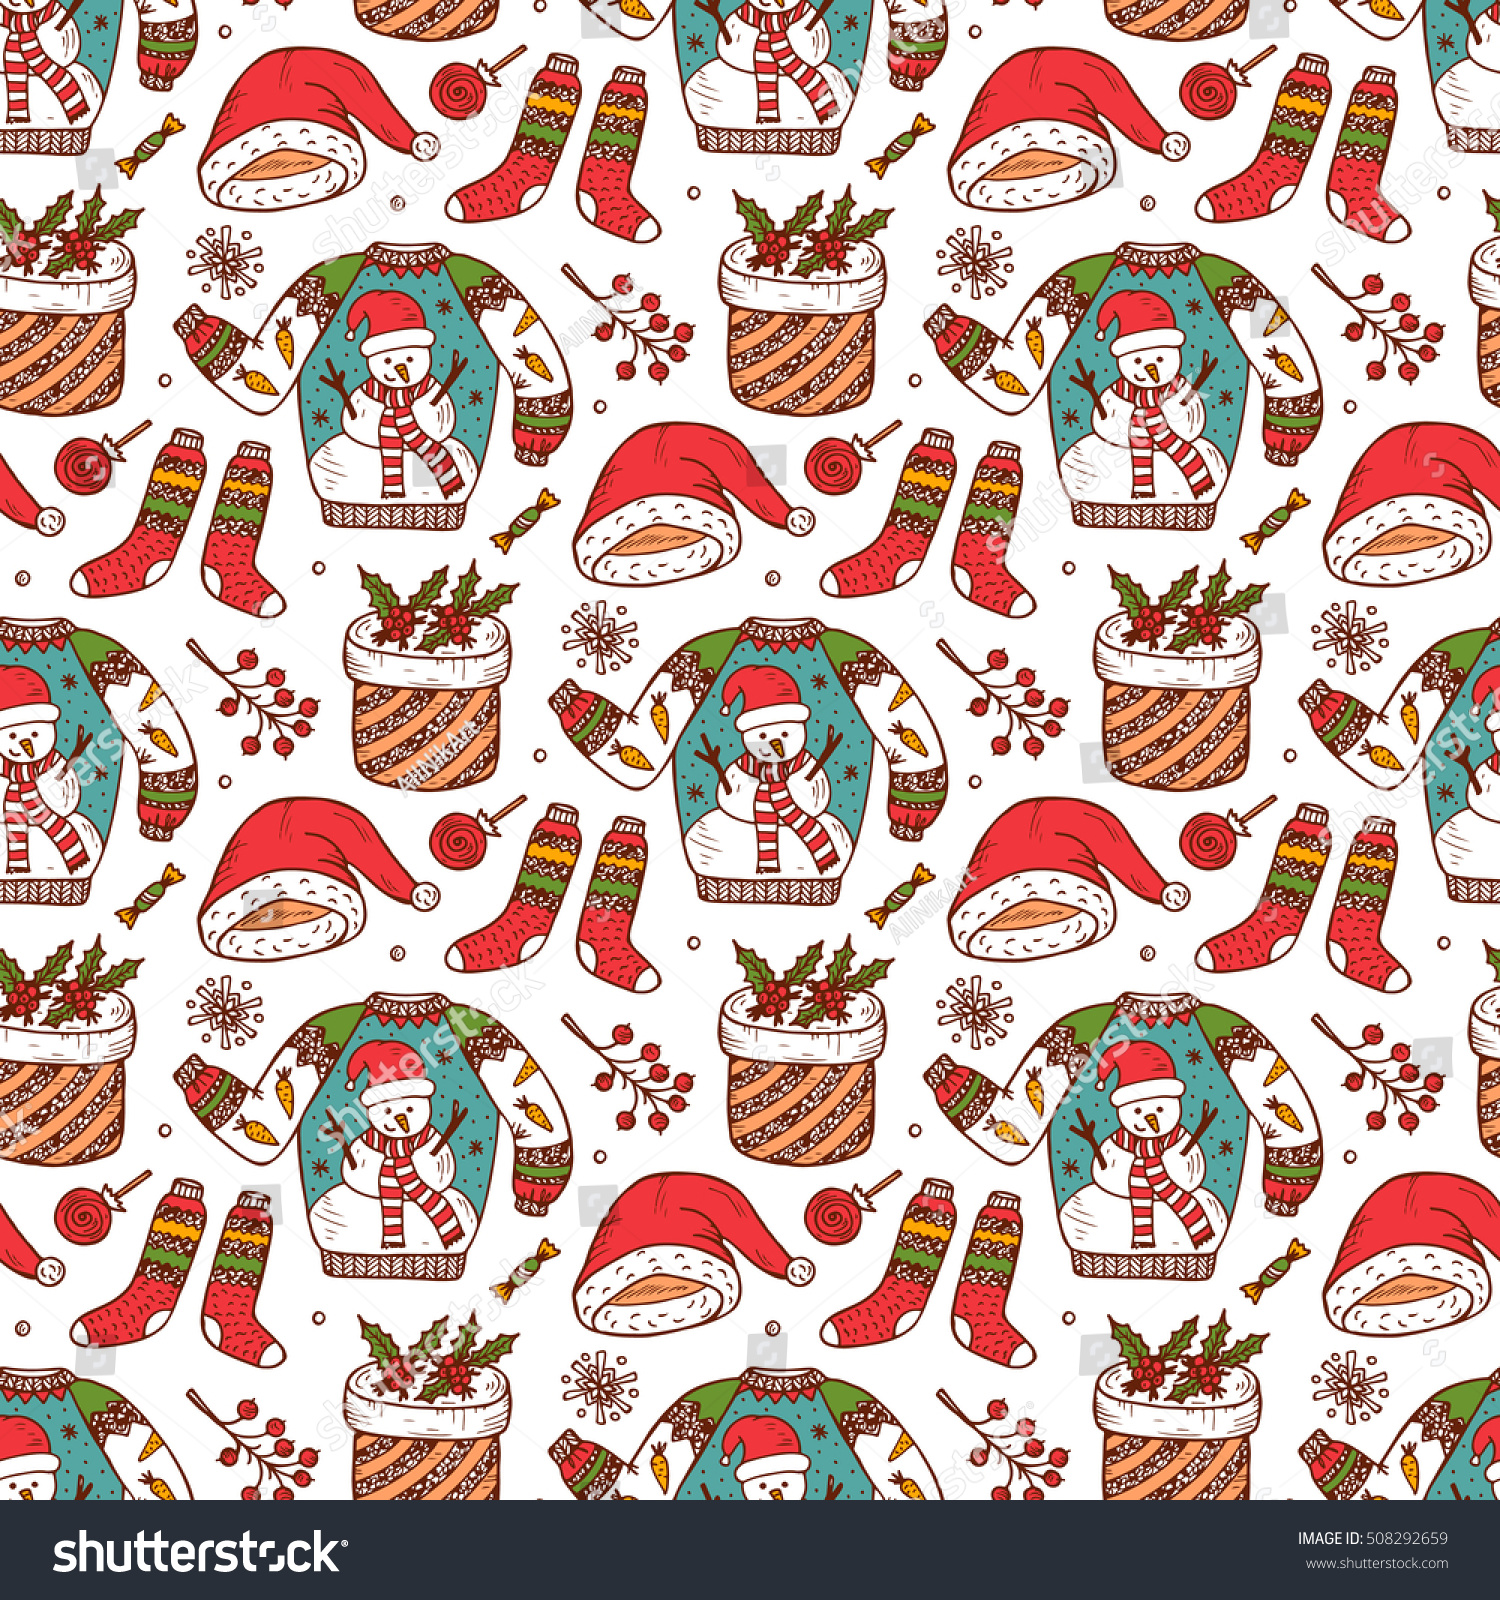 886d70faeb7fc Ugly Christmas Sweater Party. Vector Xmas Seamless pattern. Hand Drawn  Doodle Christmas festive knitted